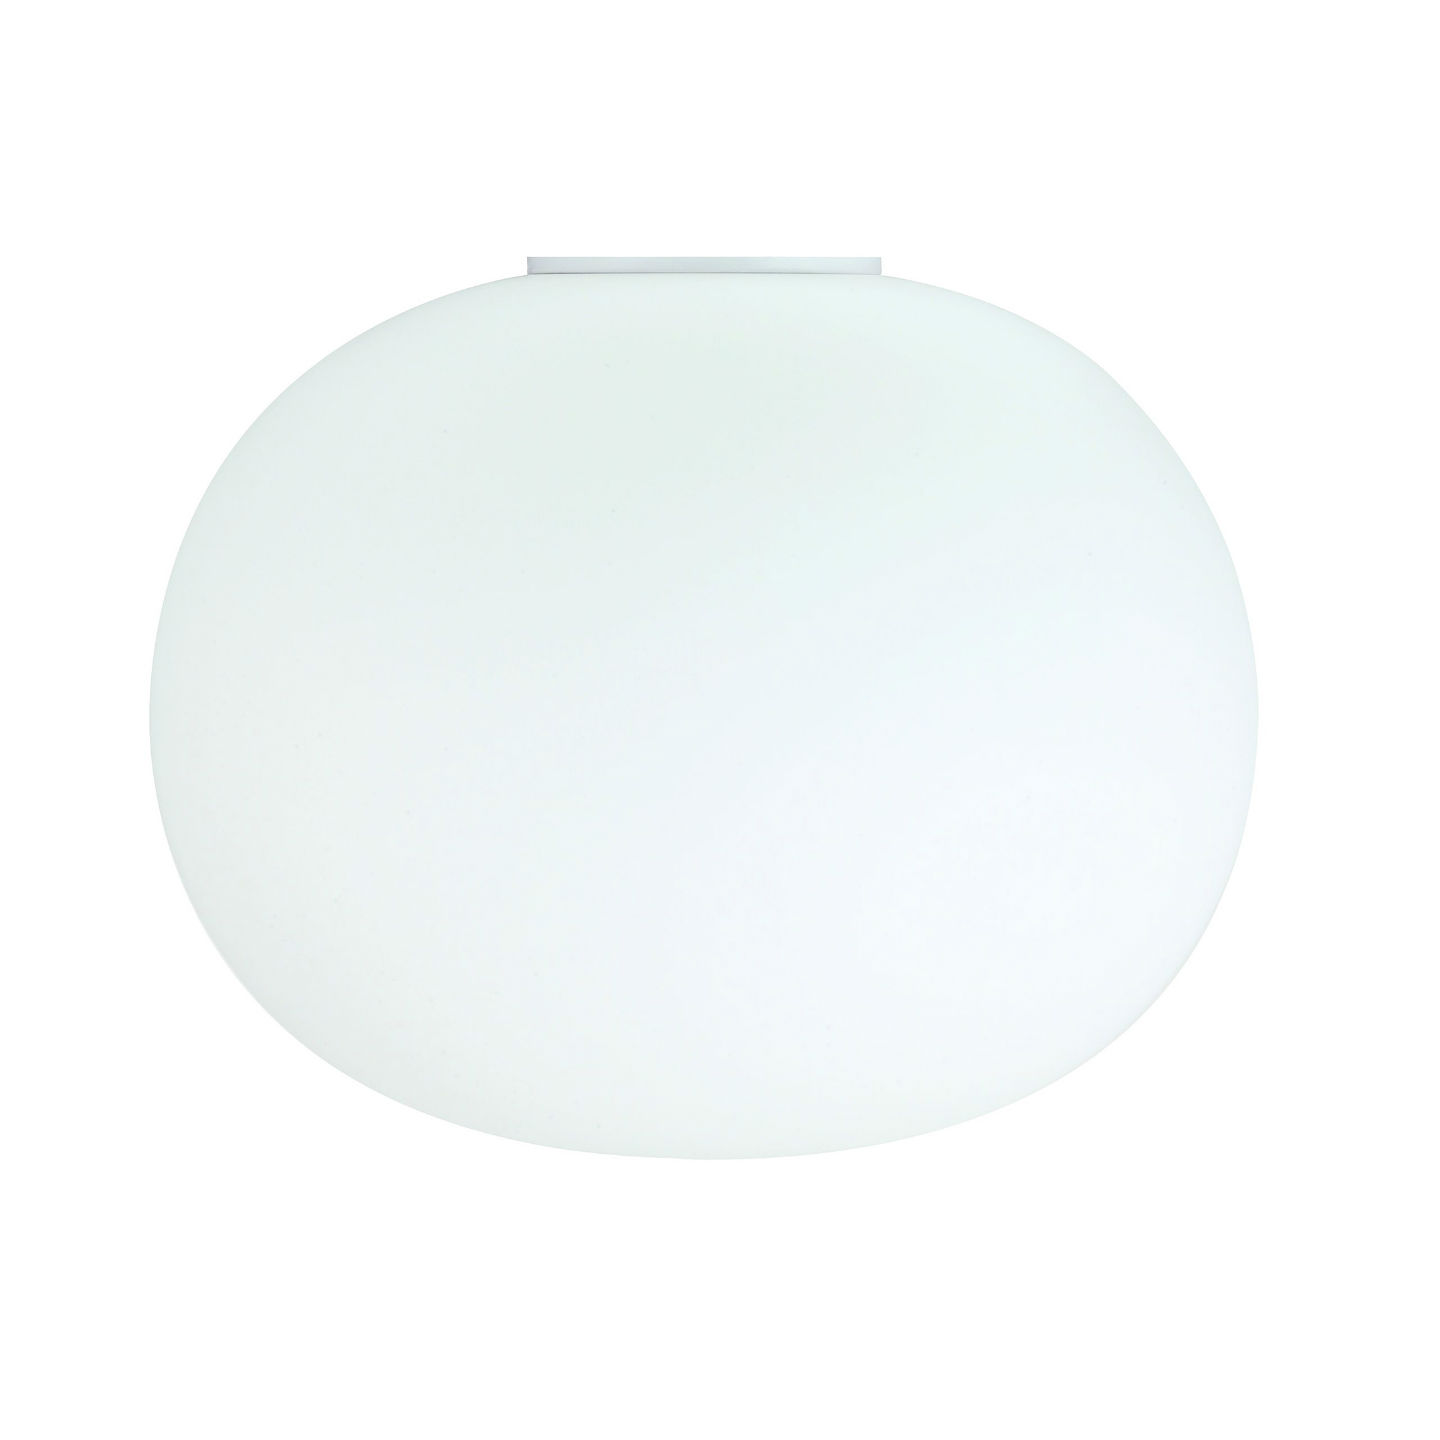 Glo Ball W Wall Lamp 33cm E27 70W - white opal